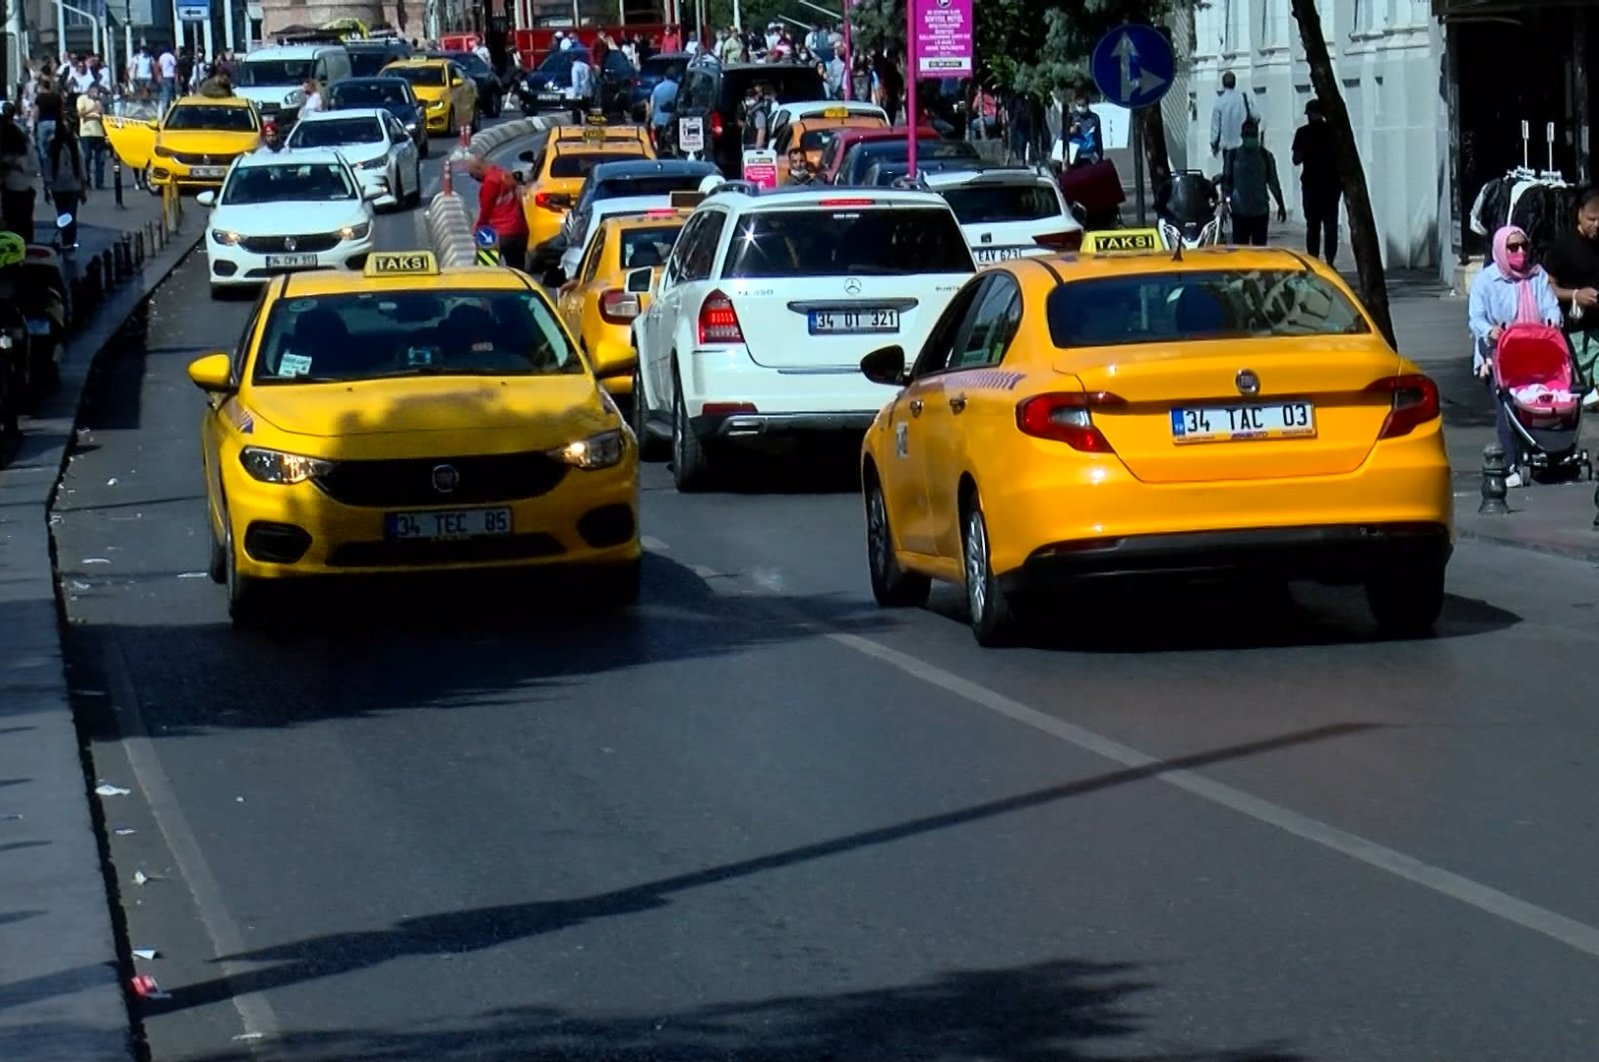 Taxis traveling on a street, in Istanbul, Turkey, Sept. 4, 2021. (DHA Photo)